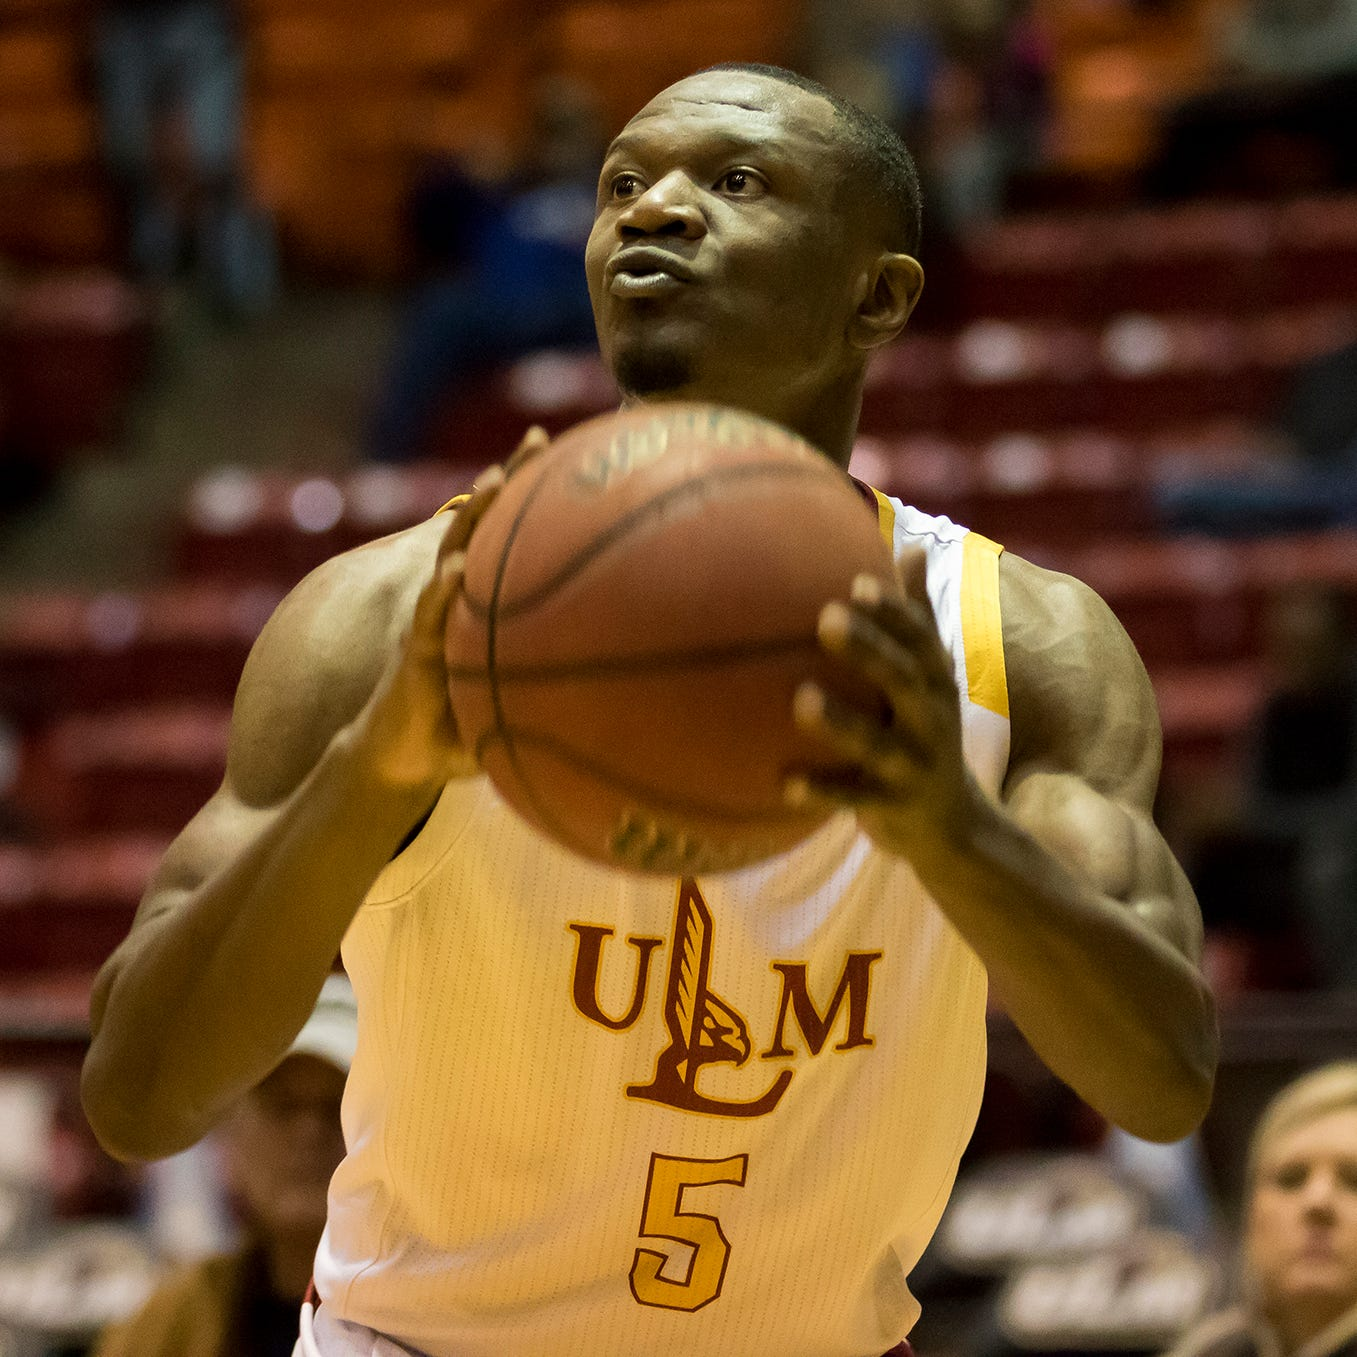 Smith returns from injury, boosts ULM's scoring punch